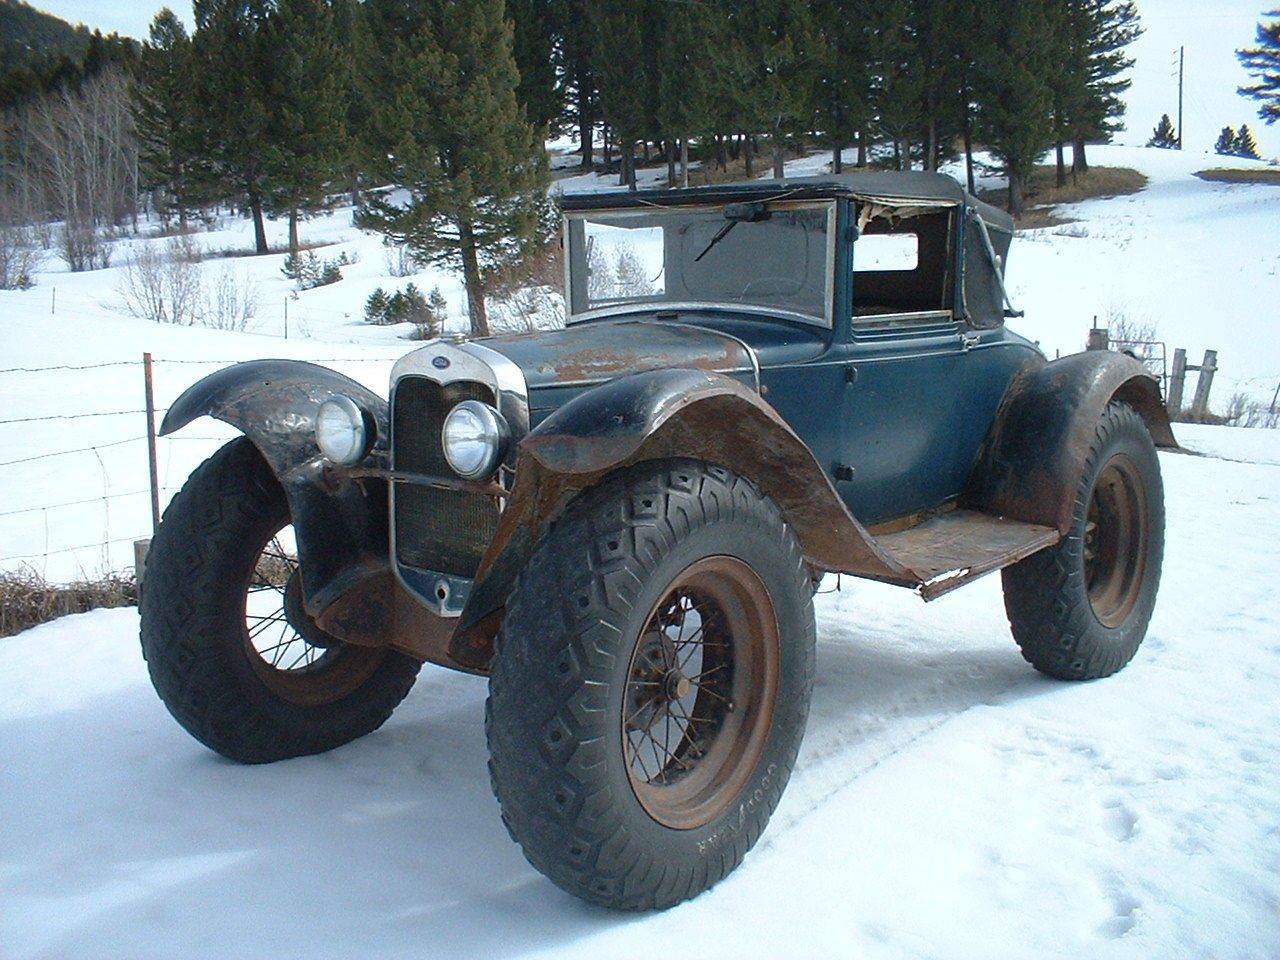 The Oral History Of An Amazing 1930 Ford Model A Off-Road Mail ...